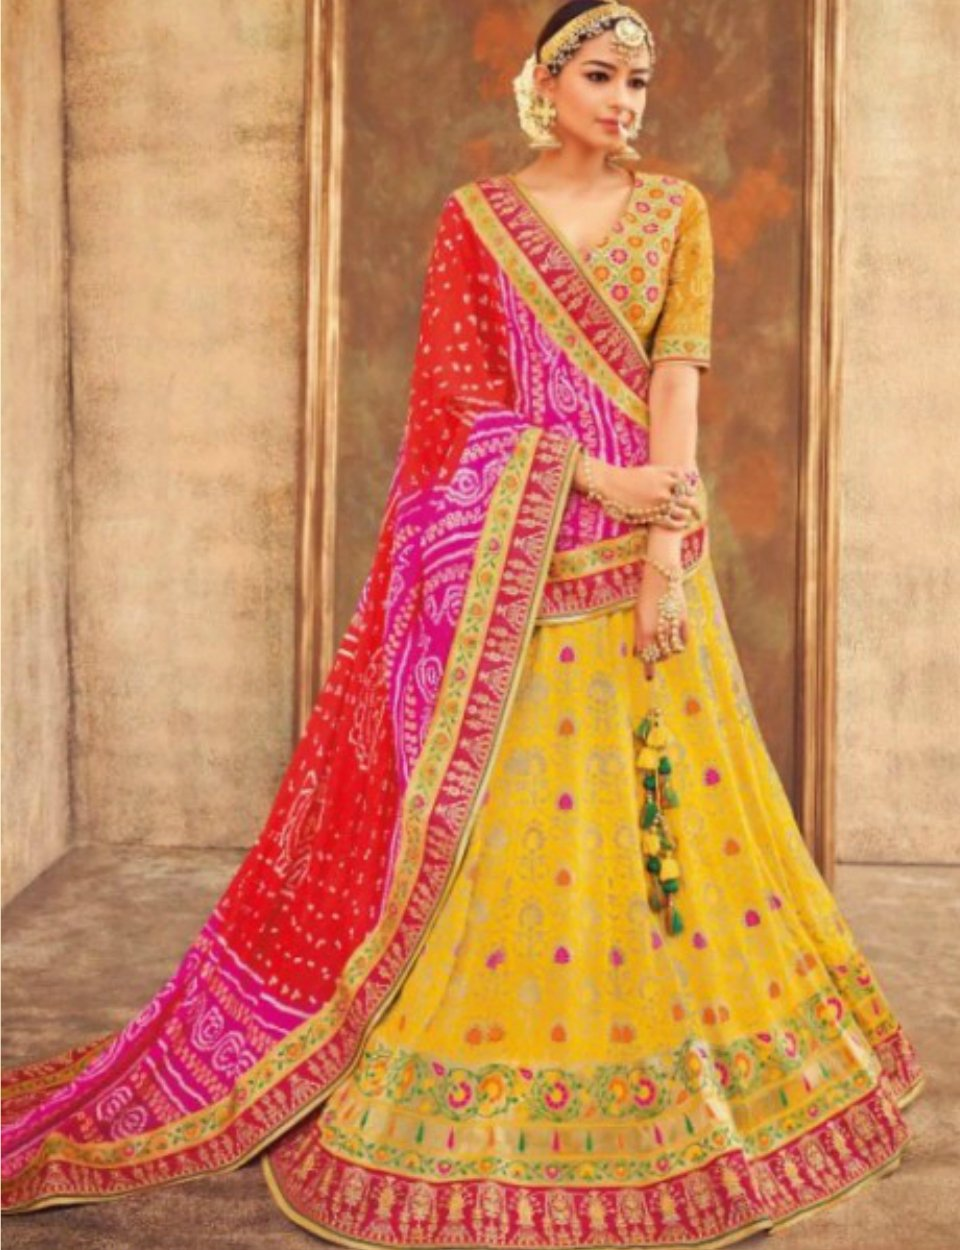 Colourful KIM5004 Spectacular Multicoloured Yellow Jacquard Silk Lehenga Choli by Fashion Nation